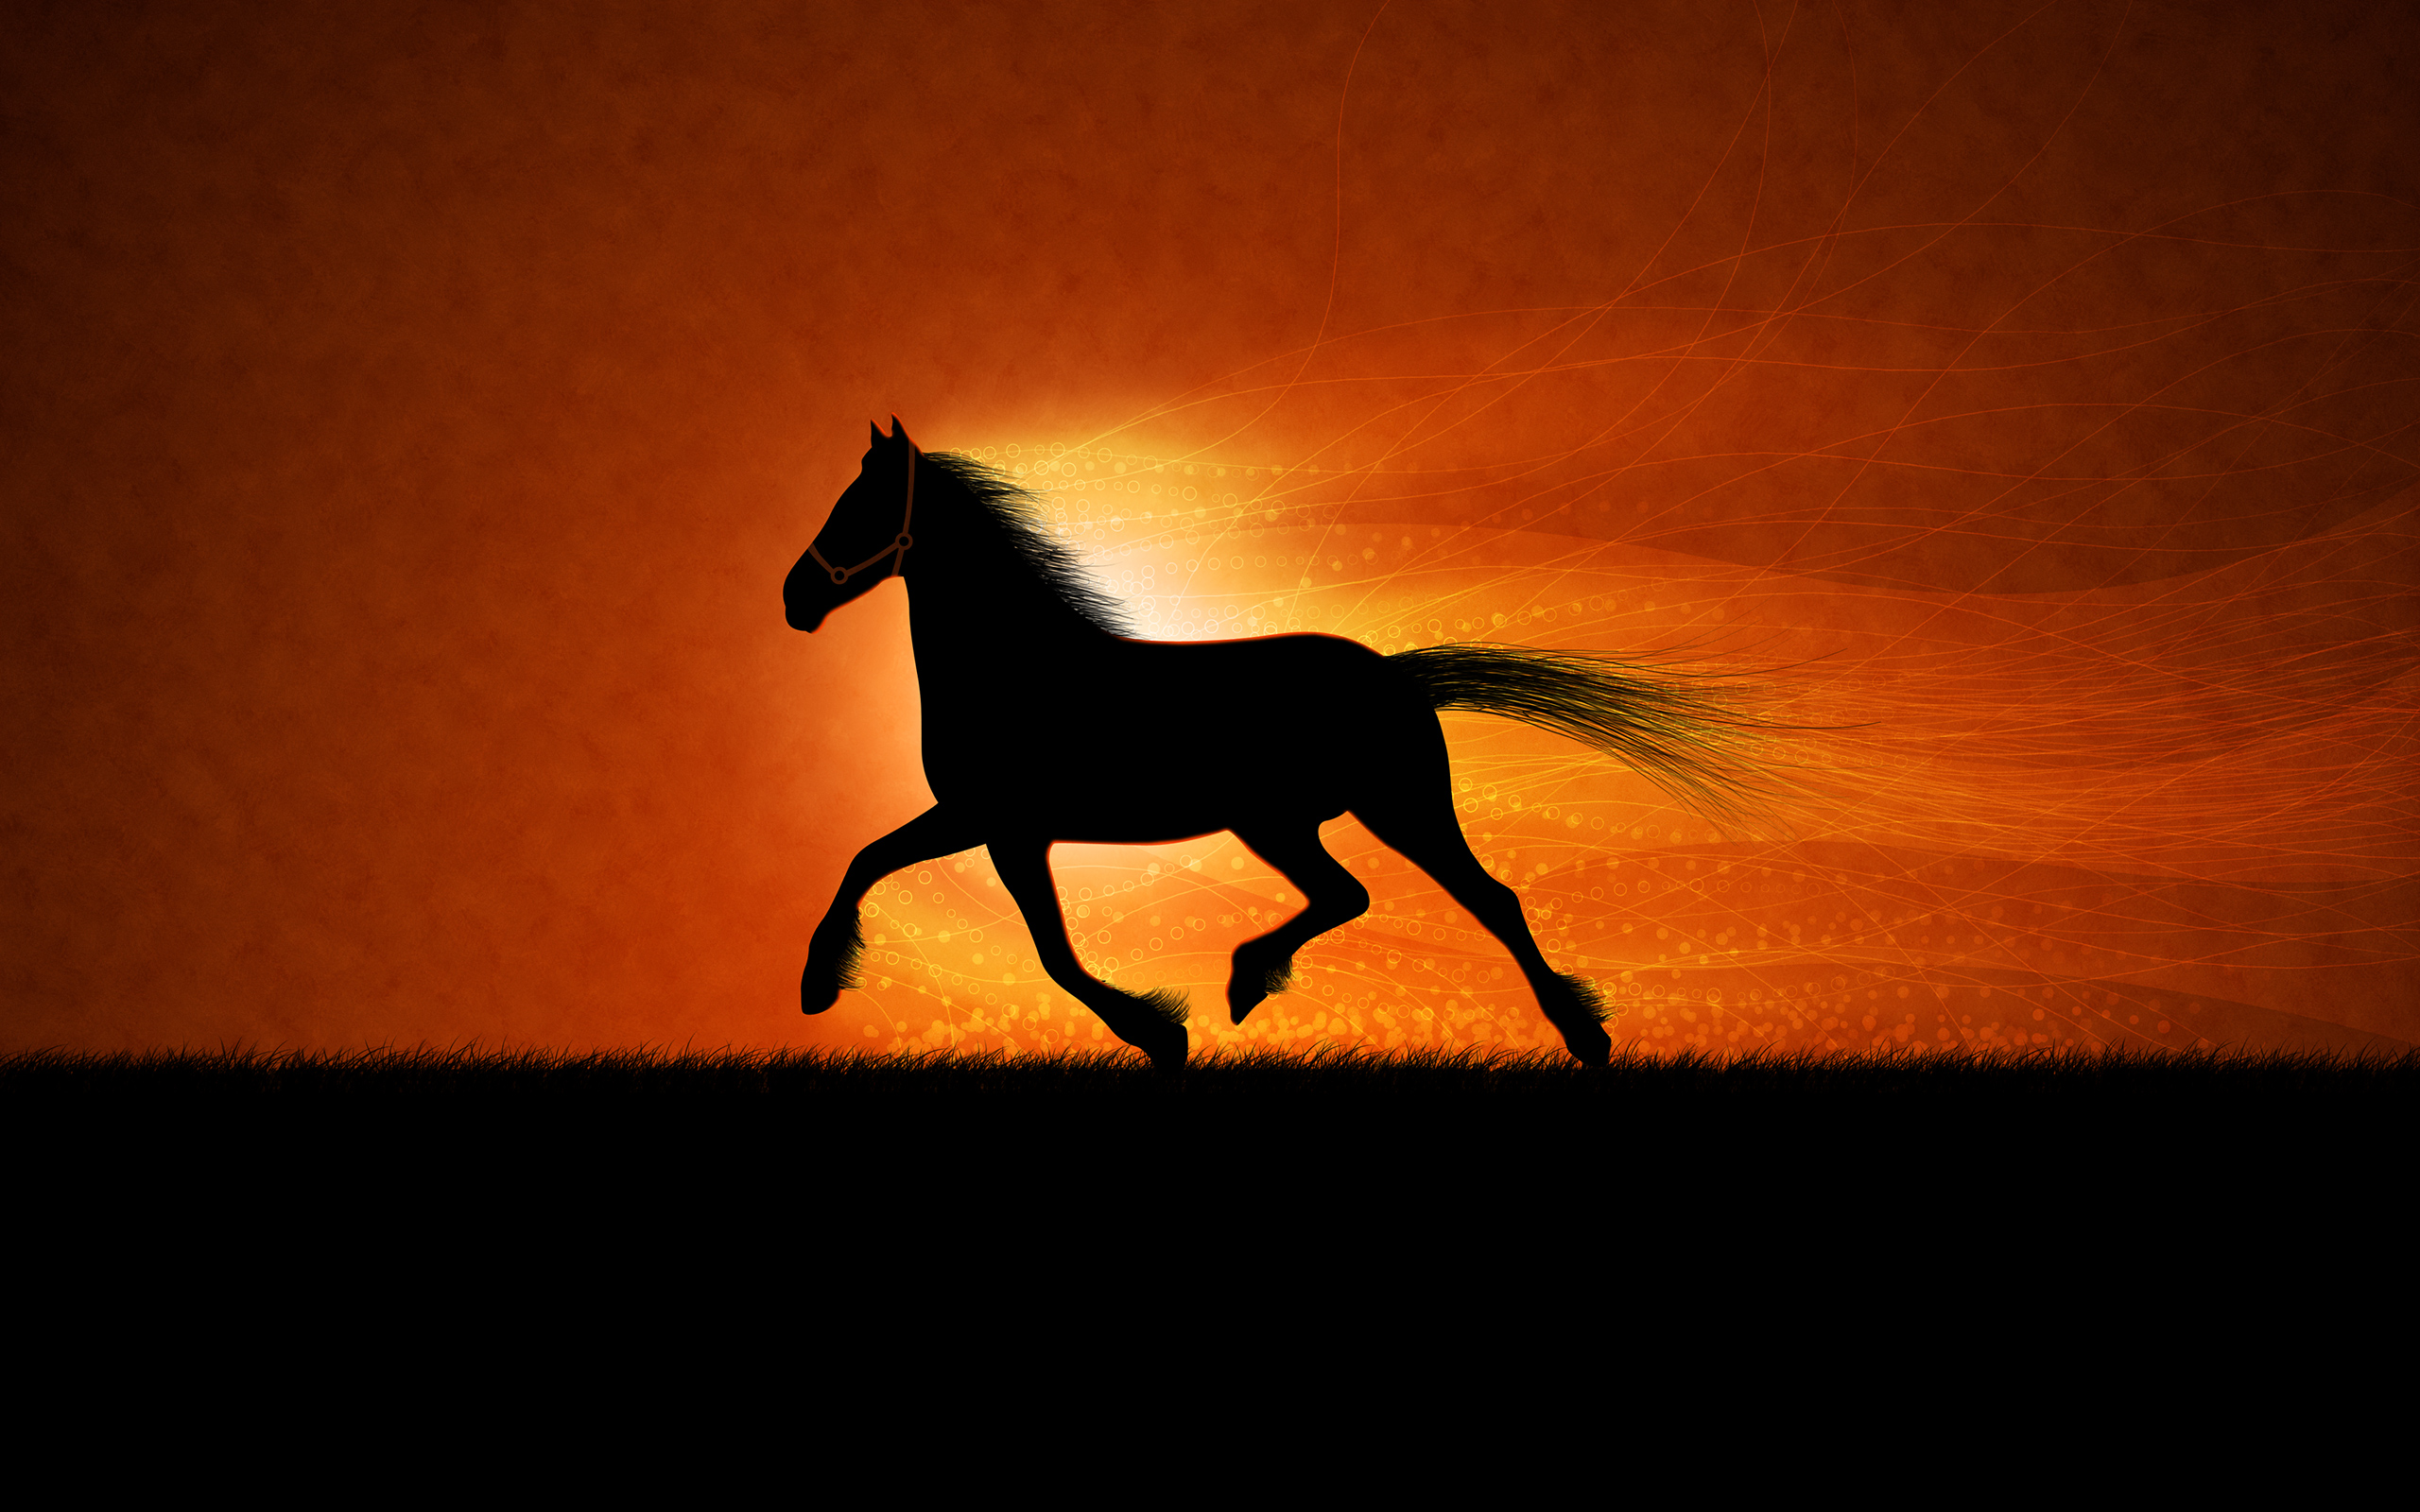 2560x1600px horse hd wallpaper 1600x900 wallpapersafari running horse wallpapers hd wallpapers 2560x1600 altavistaventures Image collections